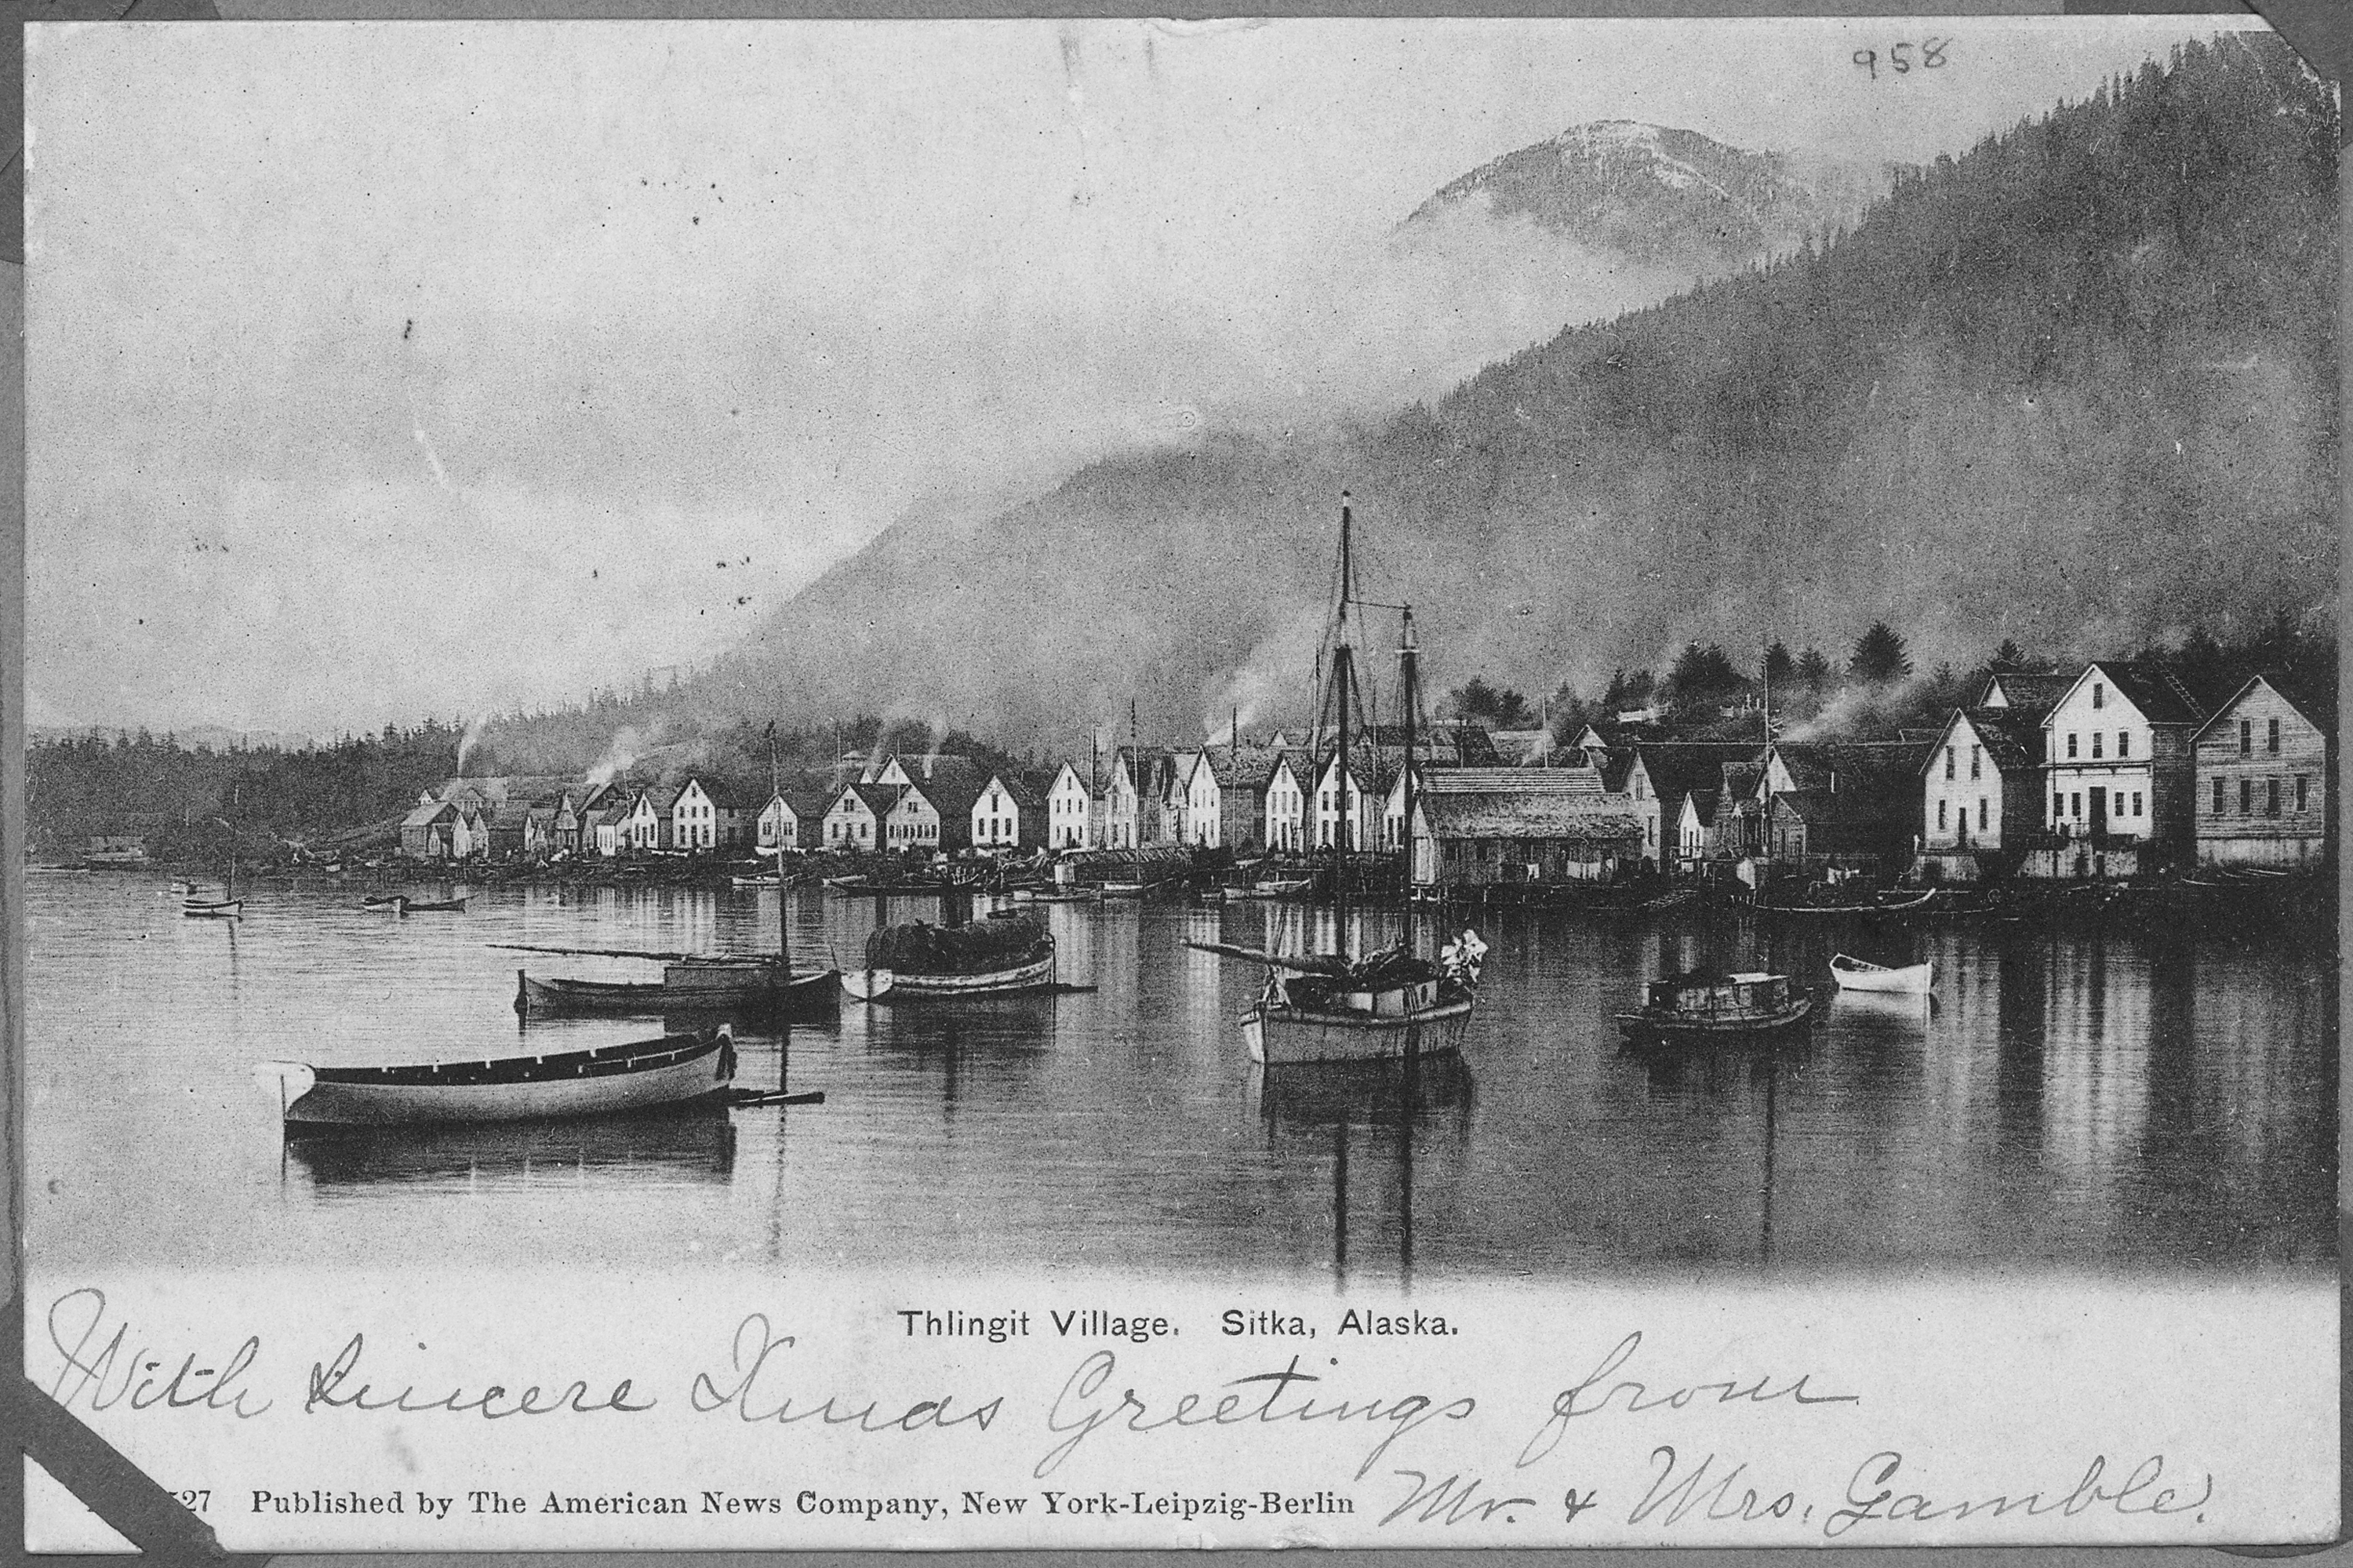 File:Post card. Thlinget Village, Sitka, Alaska. - NARA - 297793.jpg ...: commons.wikimedia.org/wiki/file:post_card._thlinget_village,_sitka...